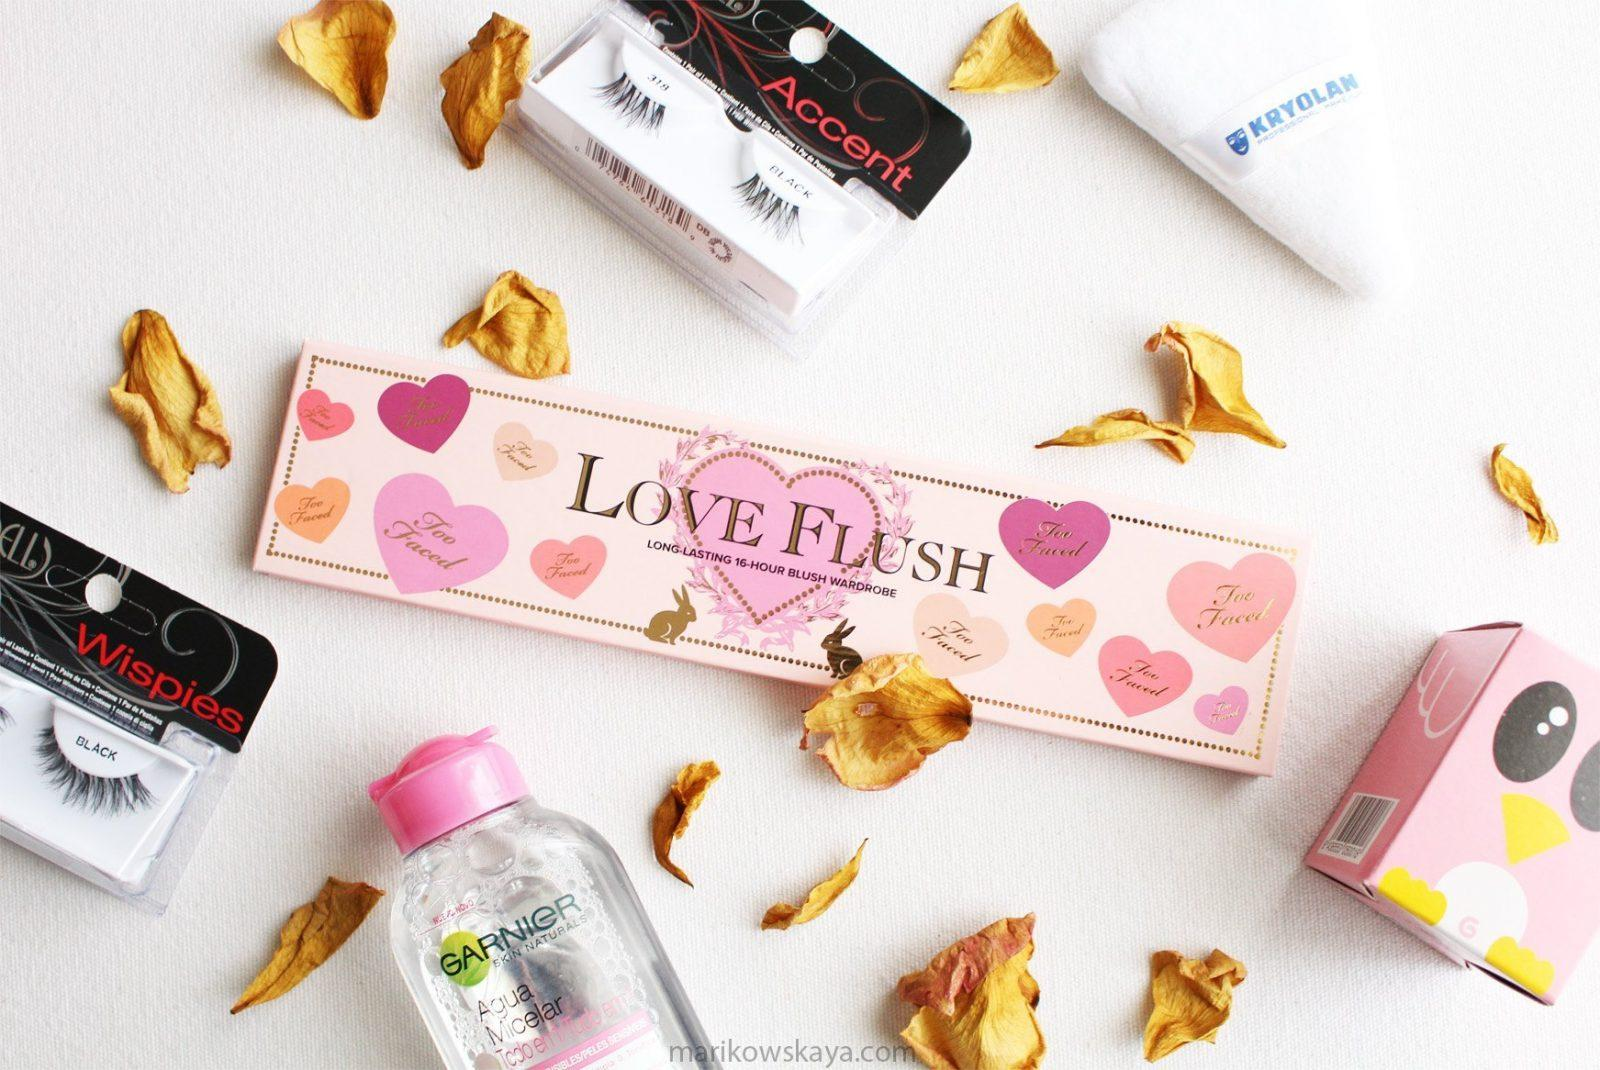 últimas compras love flush 6